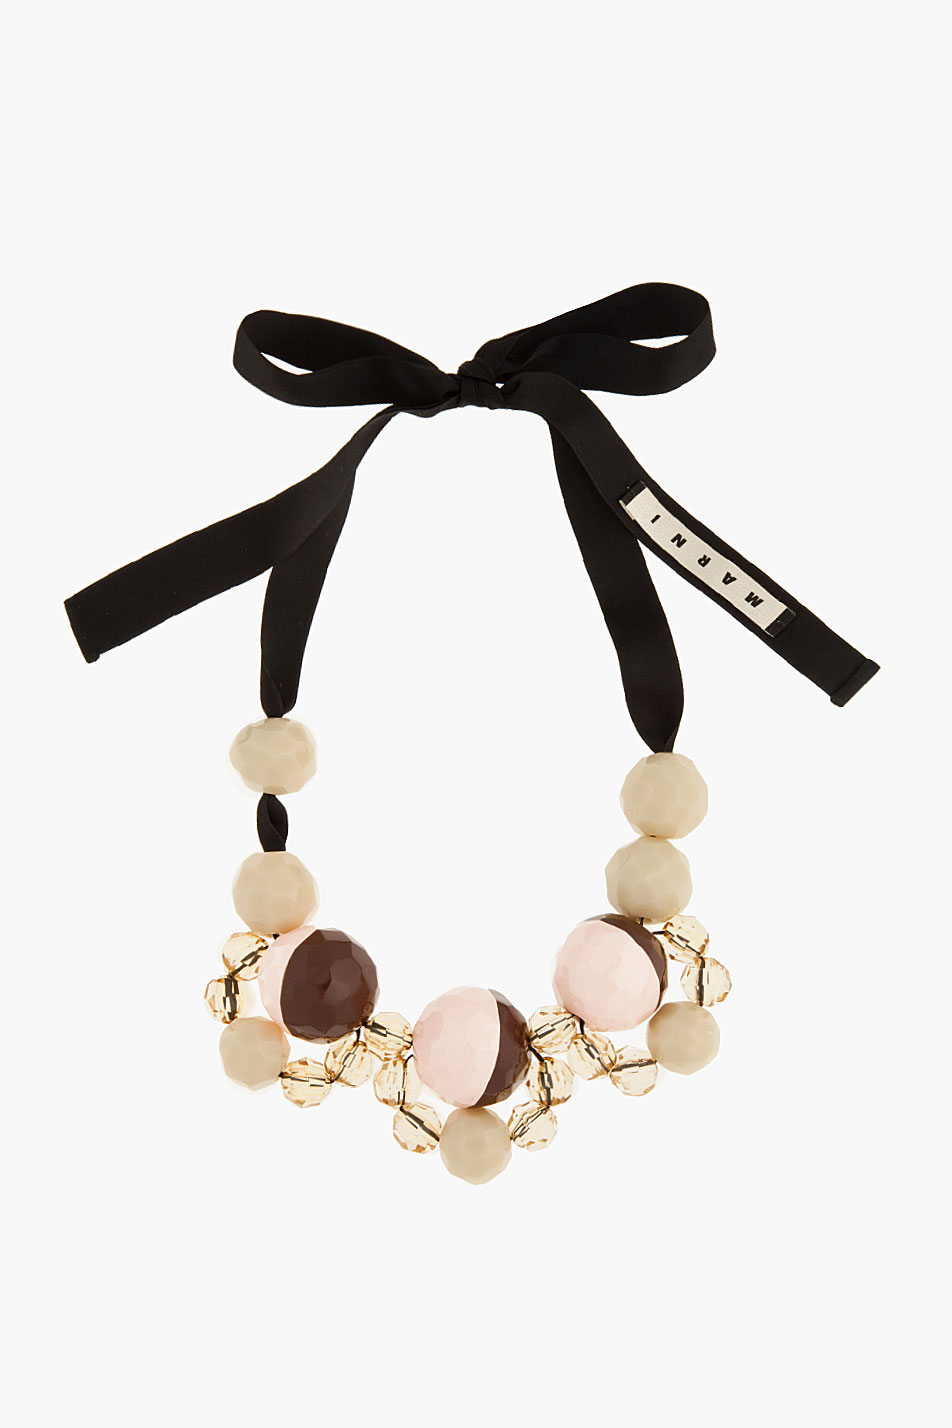 Marni Metal hoop necklace with beaded ribbon - Black 9A1v1irqY